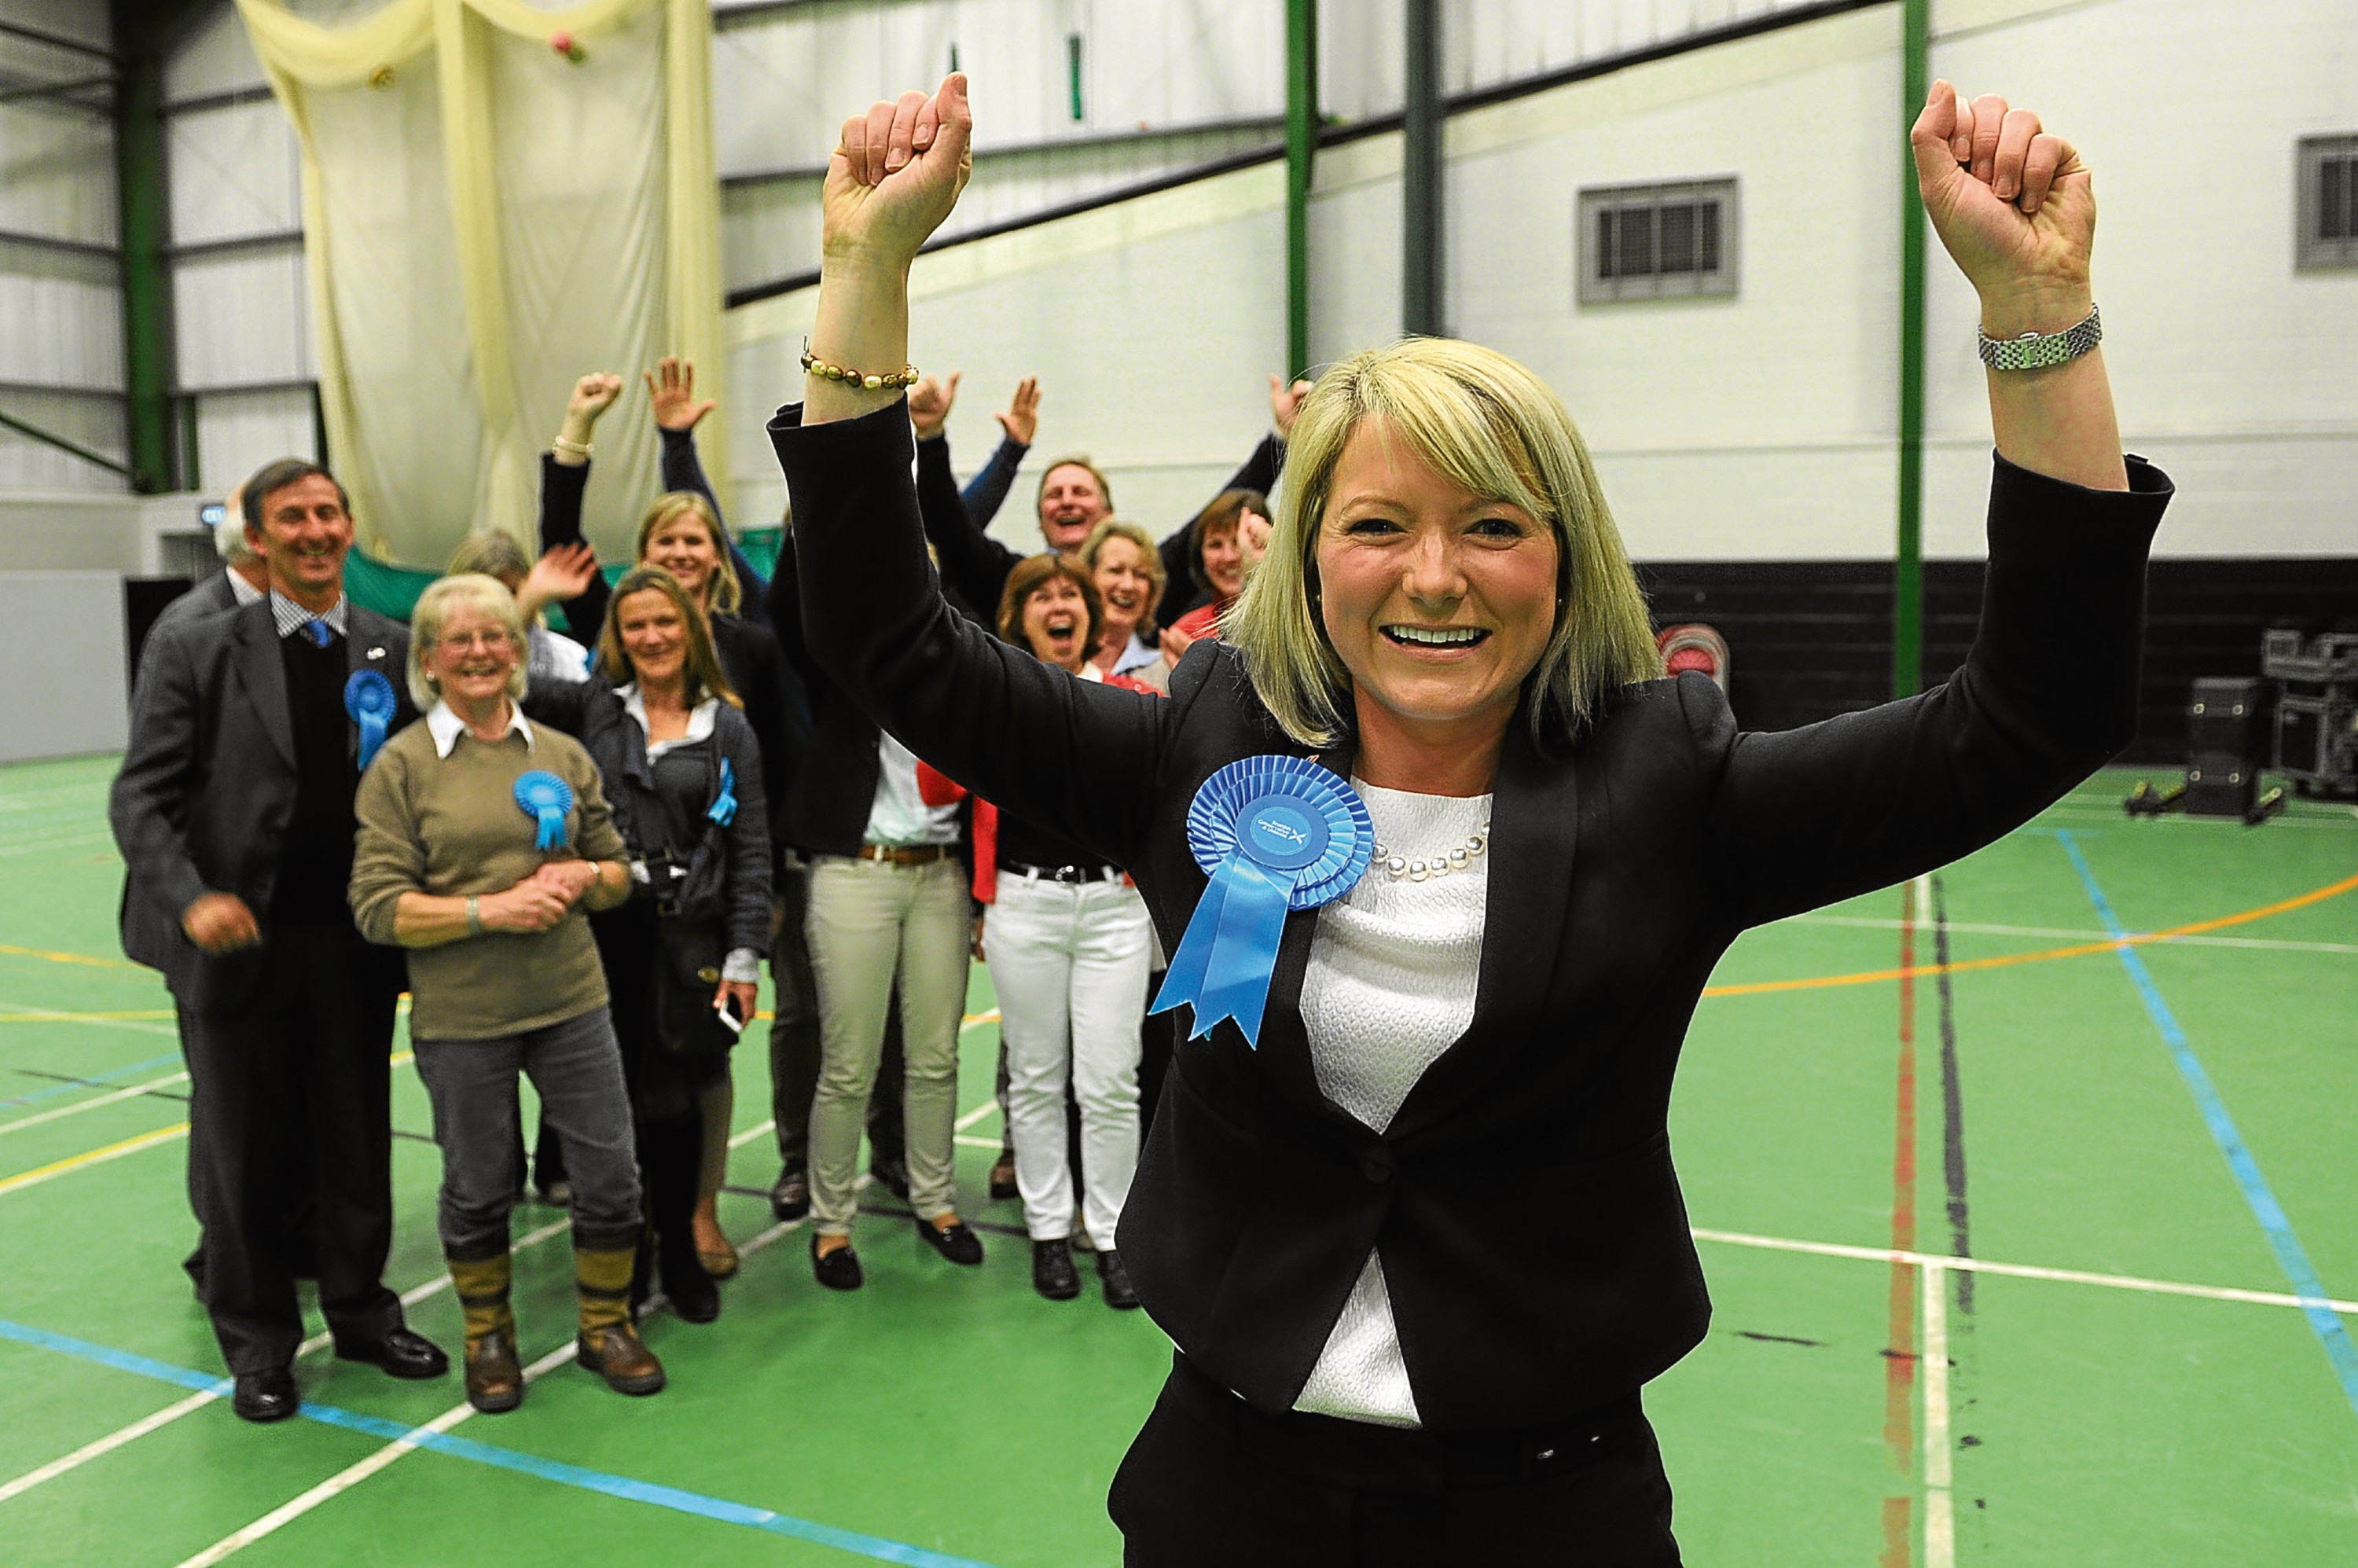 Kirstene Hair, the new Tory MP for Angus, who unseated Mike Weir of the SNP in the June 8 election.